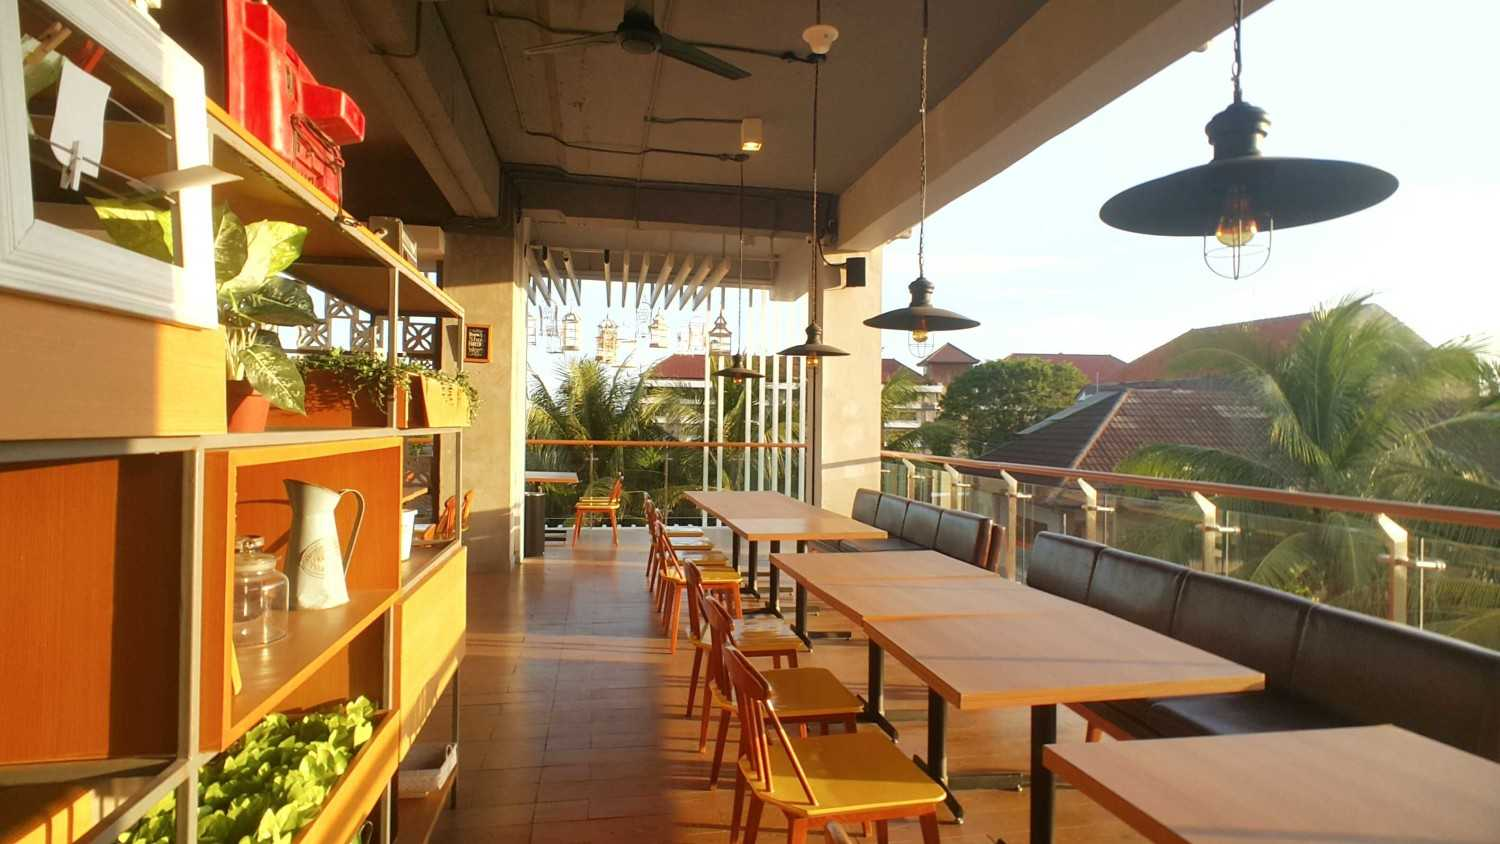 Parametr Indonesia The Park Mall Waterpark Bali Tuban, Bali Tuban, Bali Outdoor Eating Area  19037